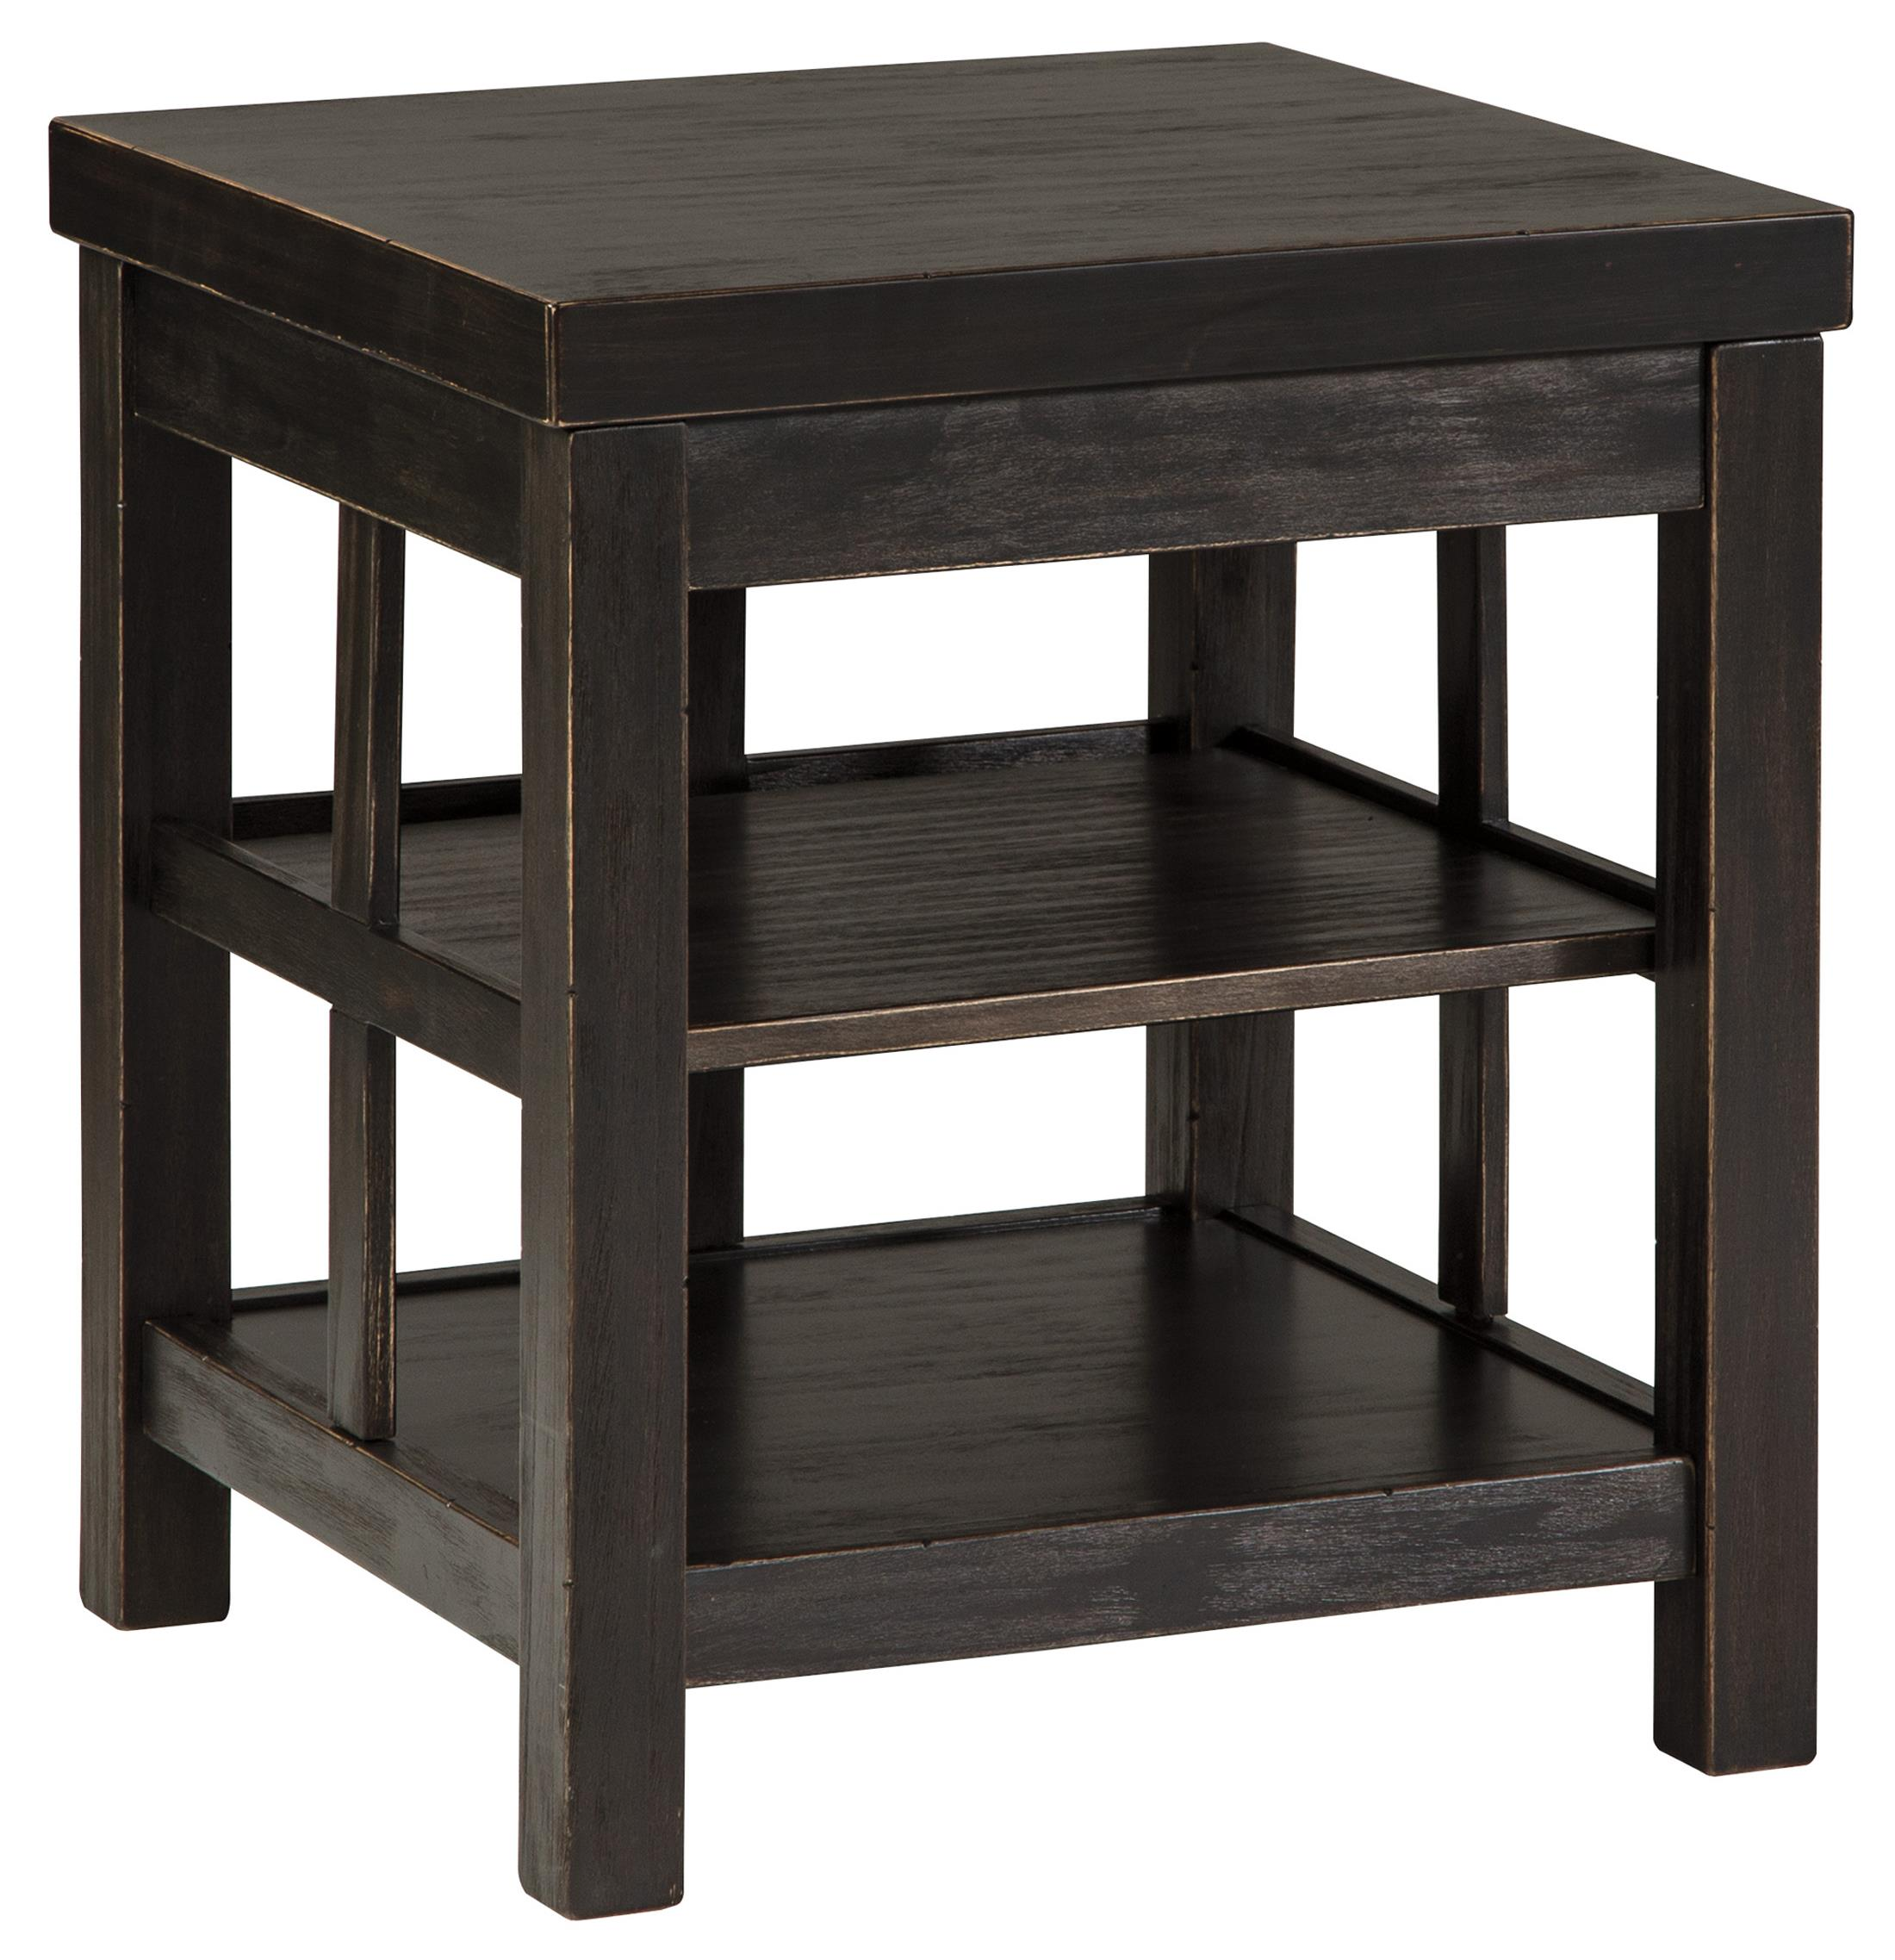 Small Black End Table Gavelston Rustic Distressed Black Square End Table With 2